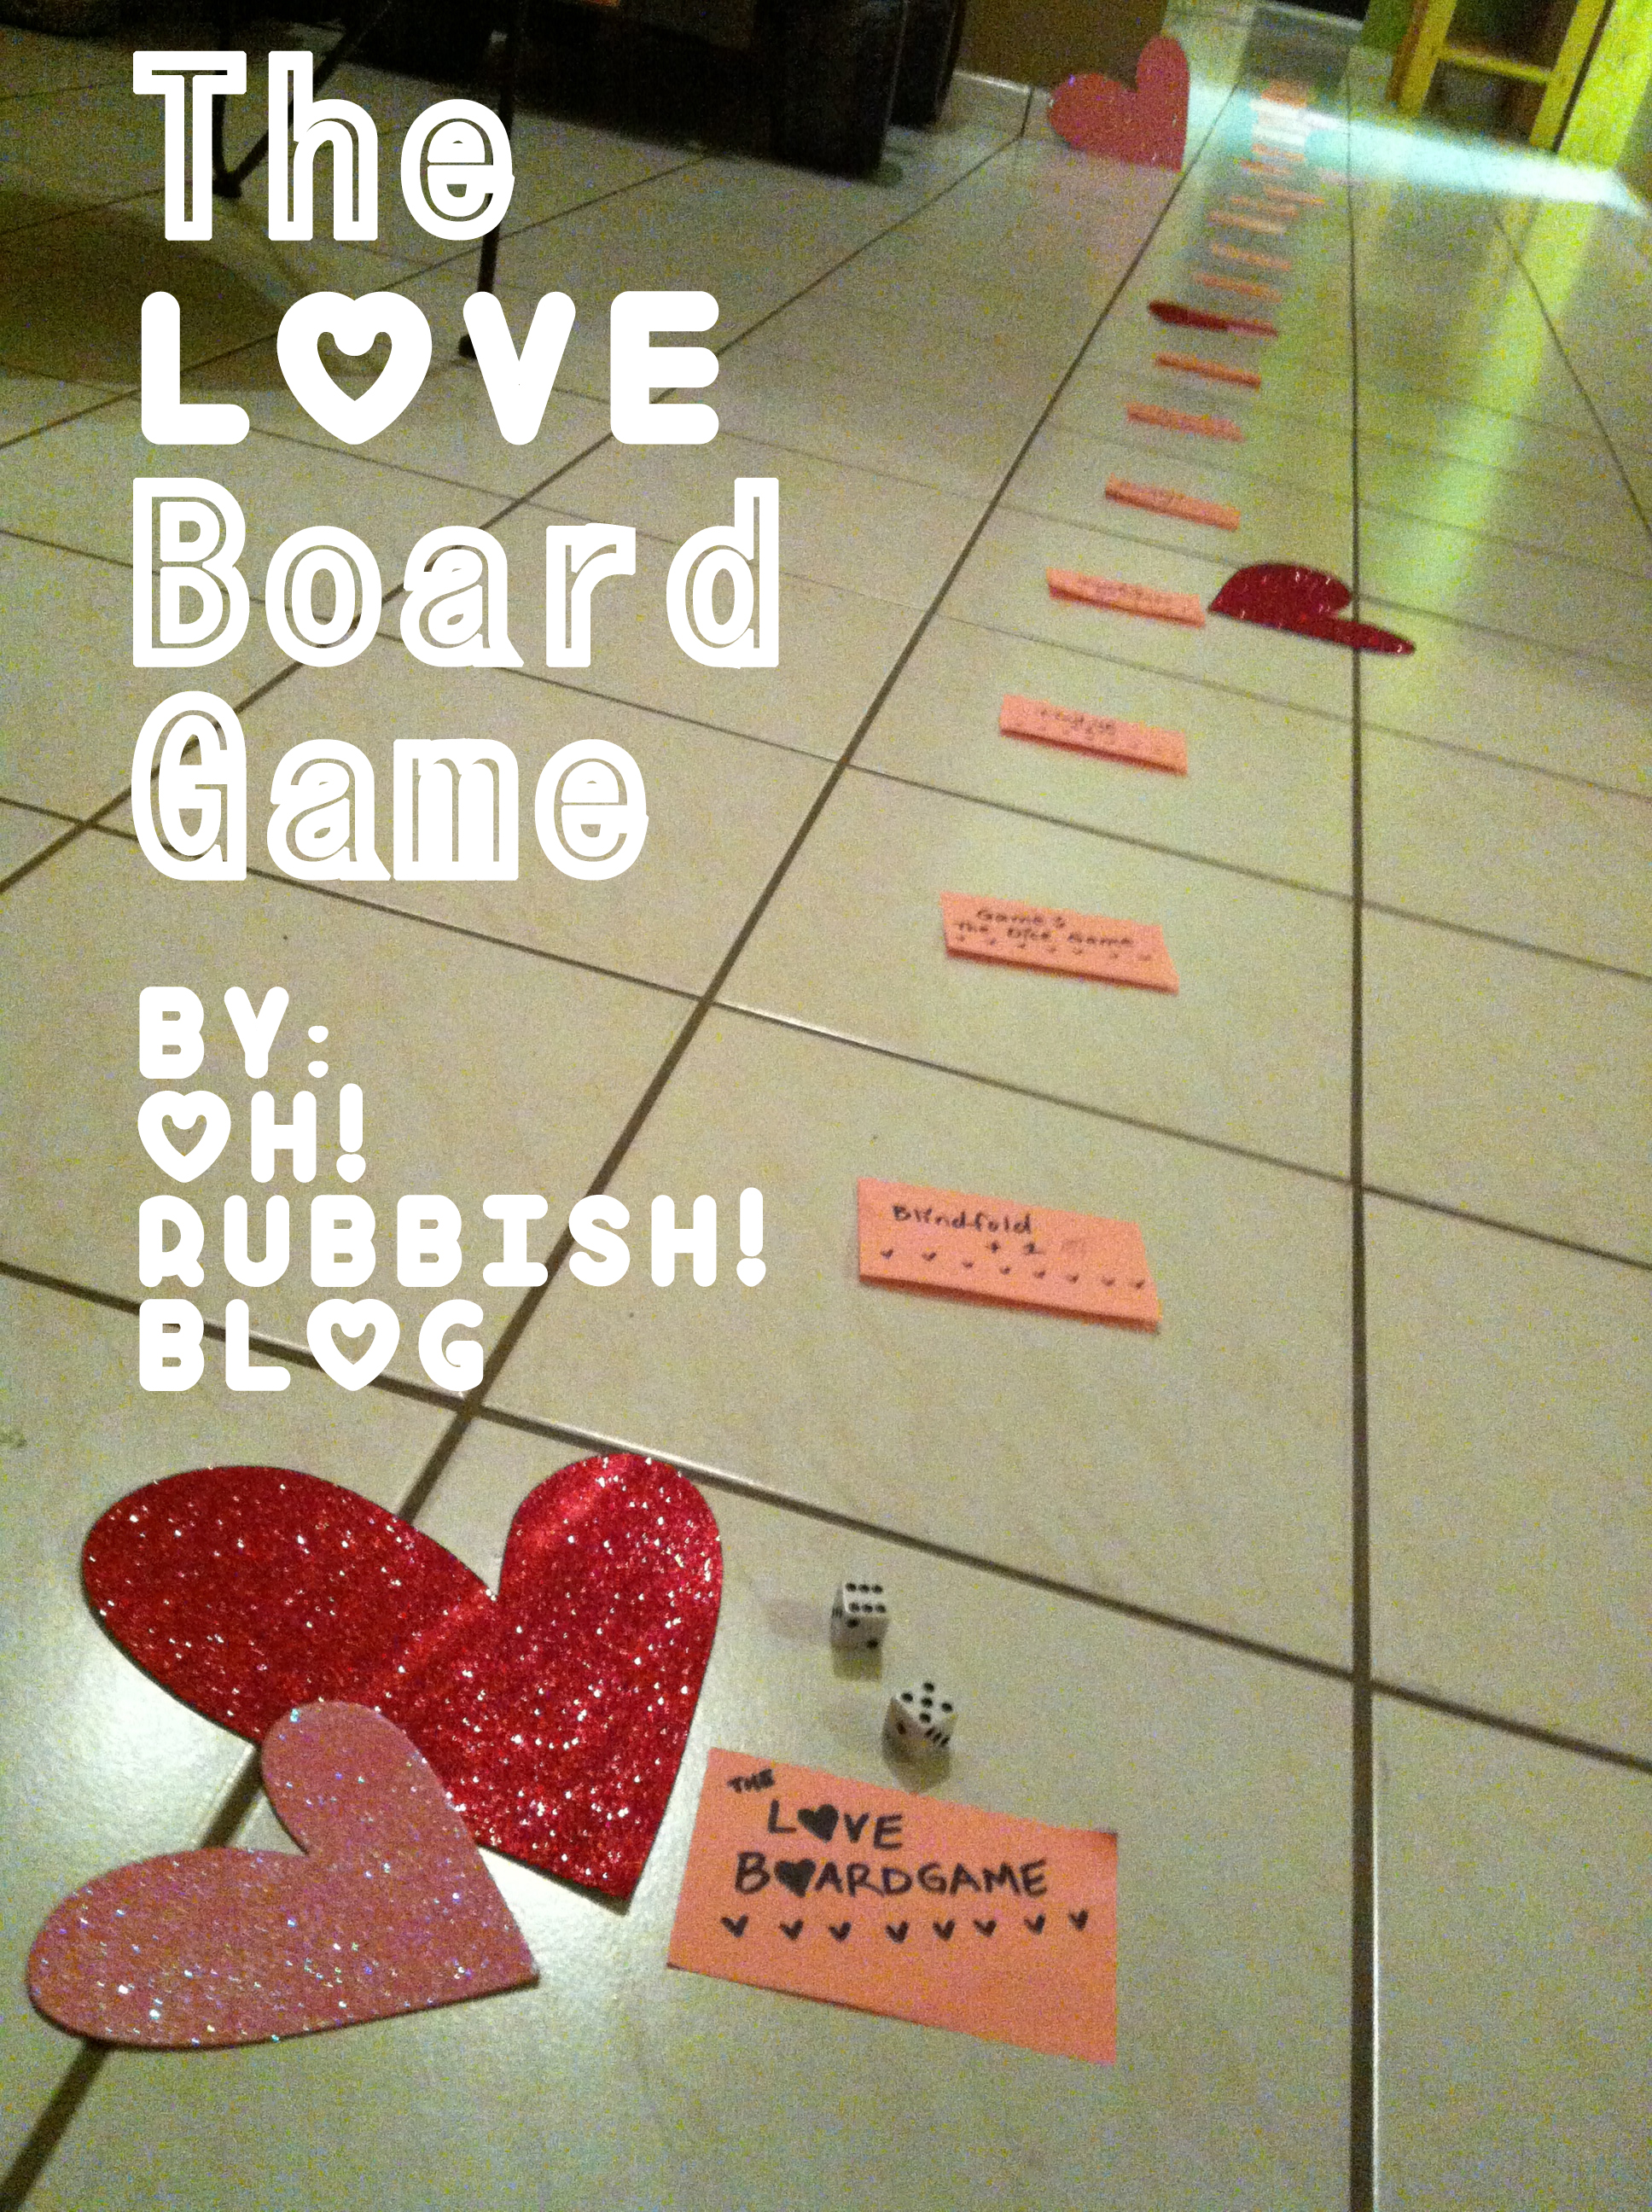 the love board game :: valentine's games for couples, Ideas